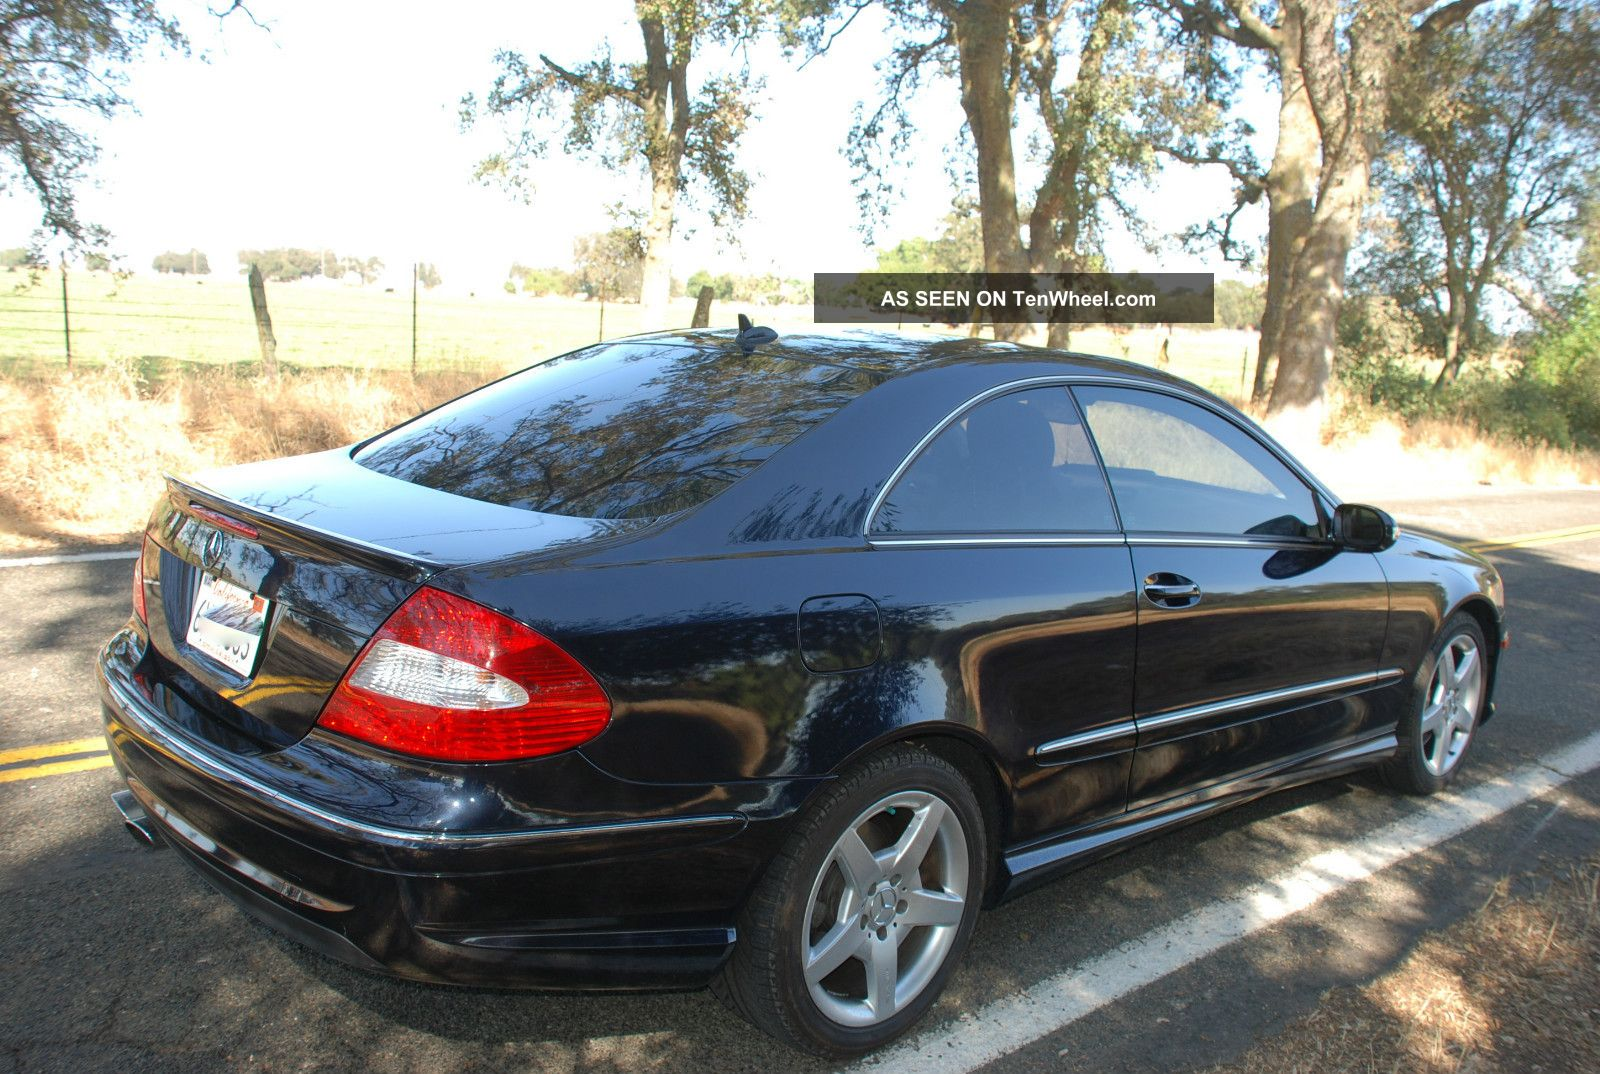 2009 mercedes benz clk350 amg package 2 door 3 5l for Mercedes benz clk 2009